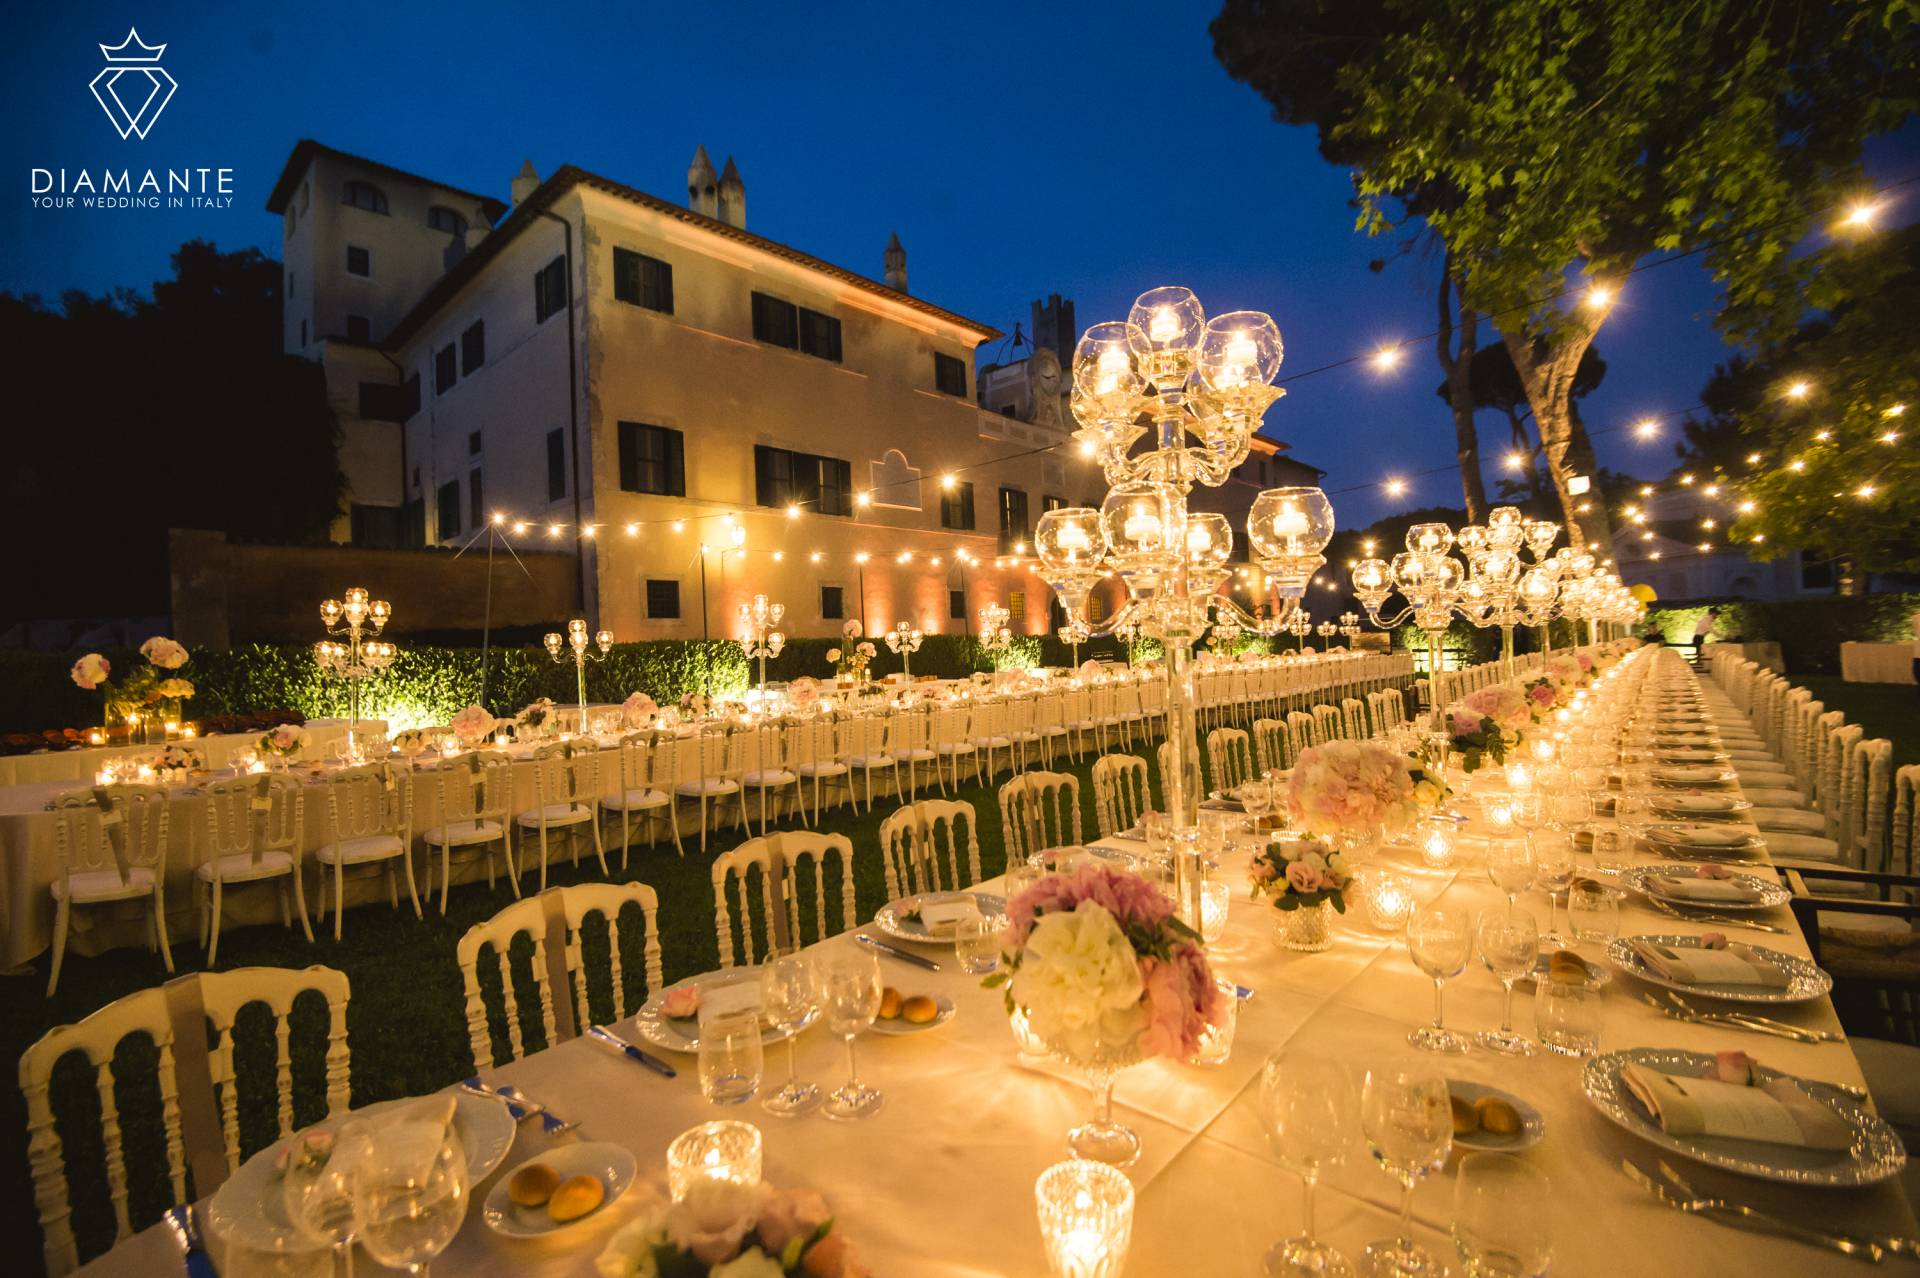 Diamante your wedding in italy